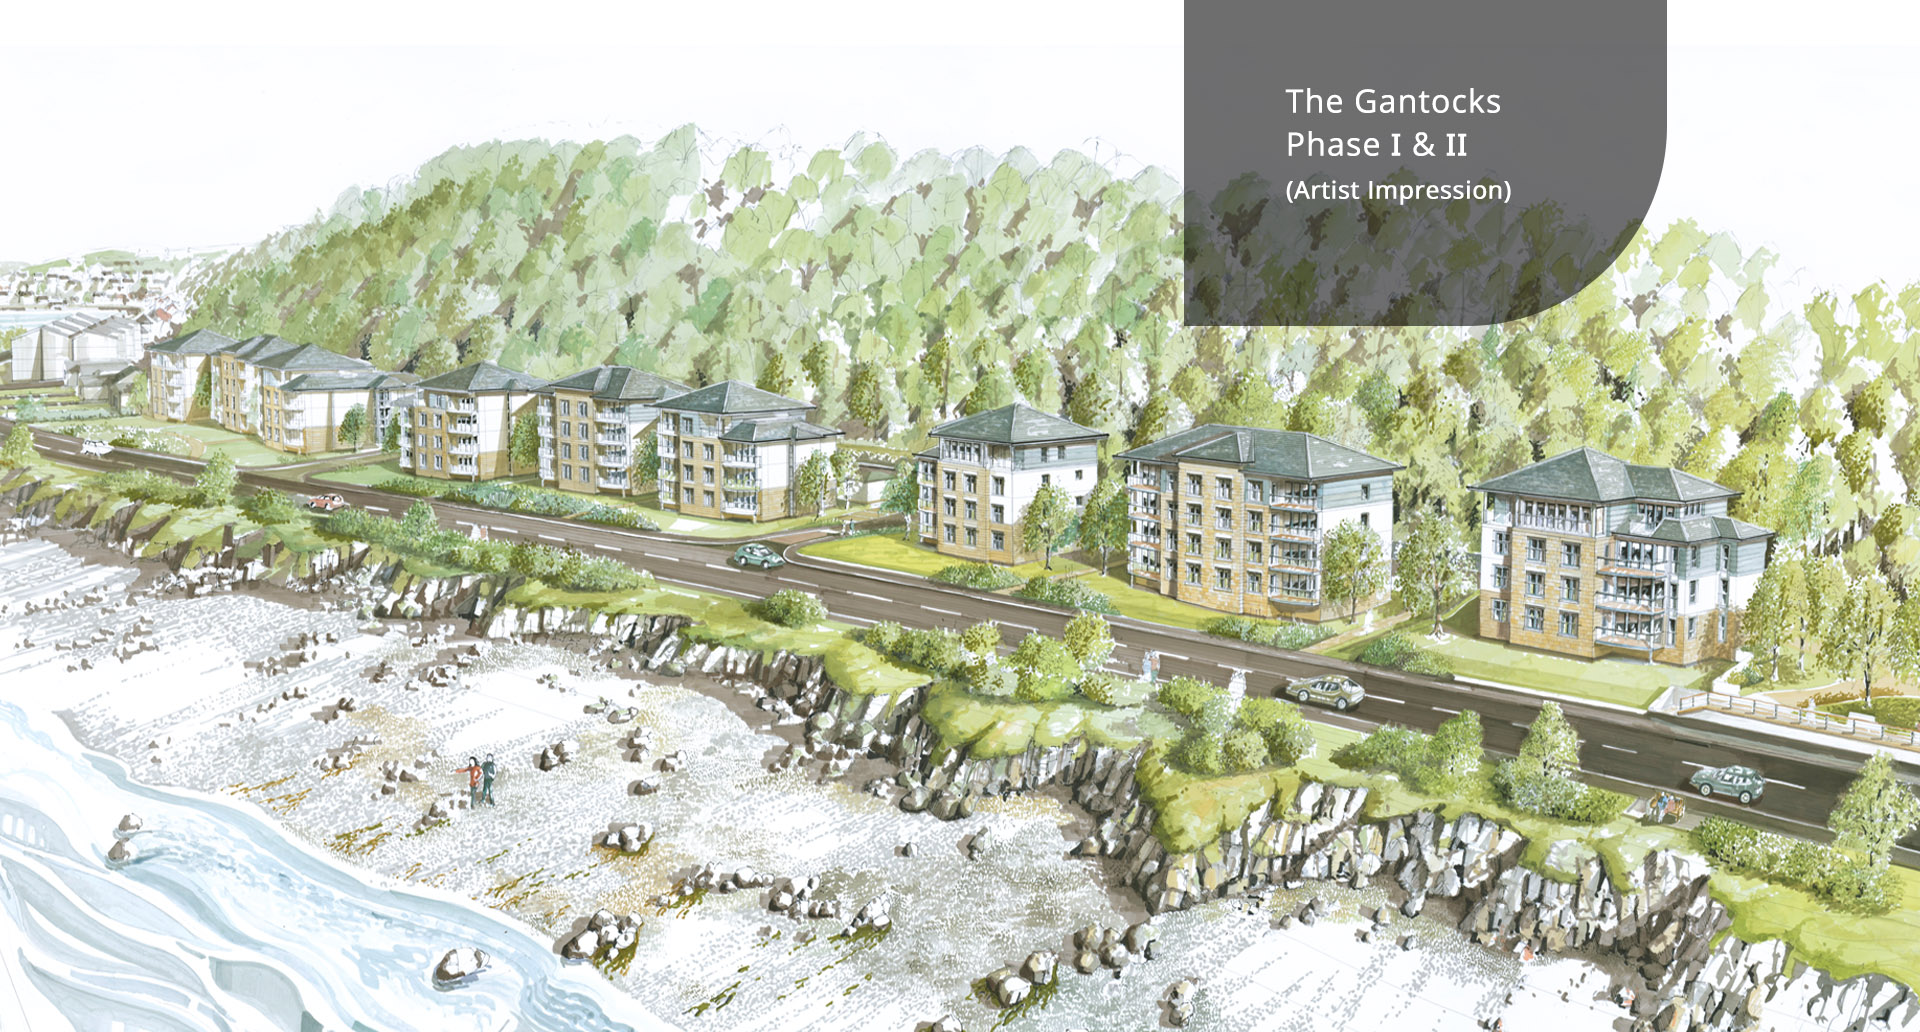 New Artist Impression of The Gantocks